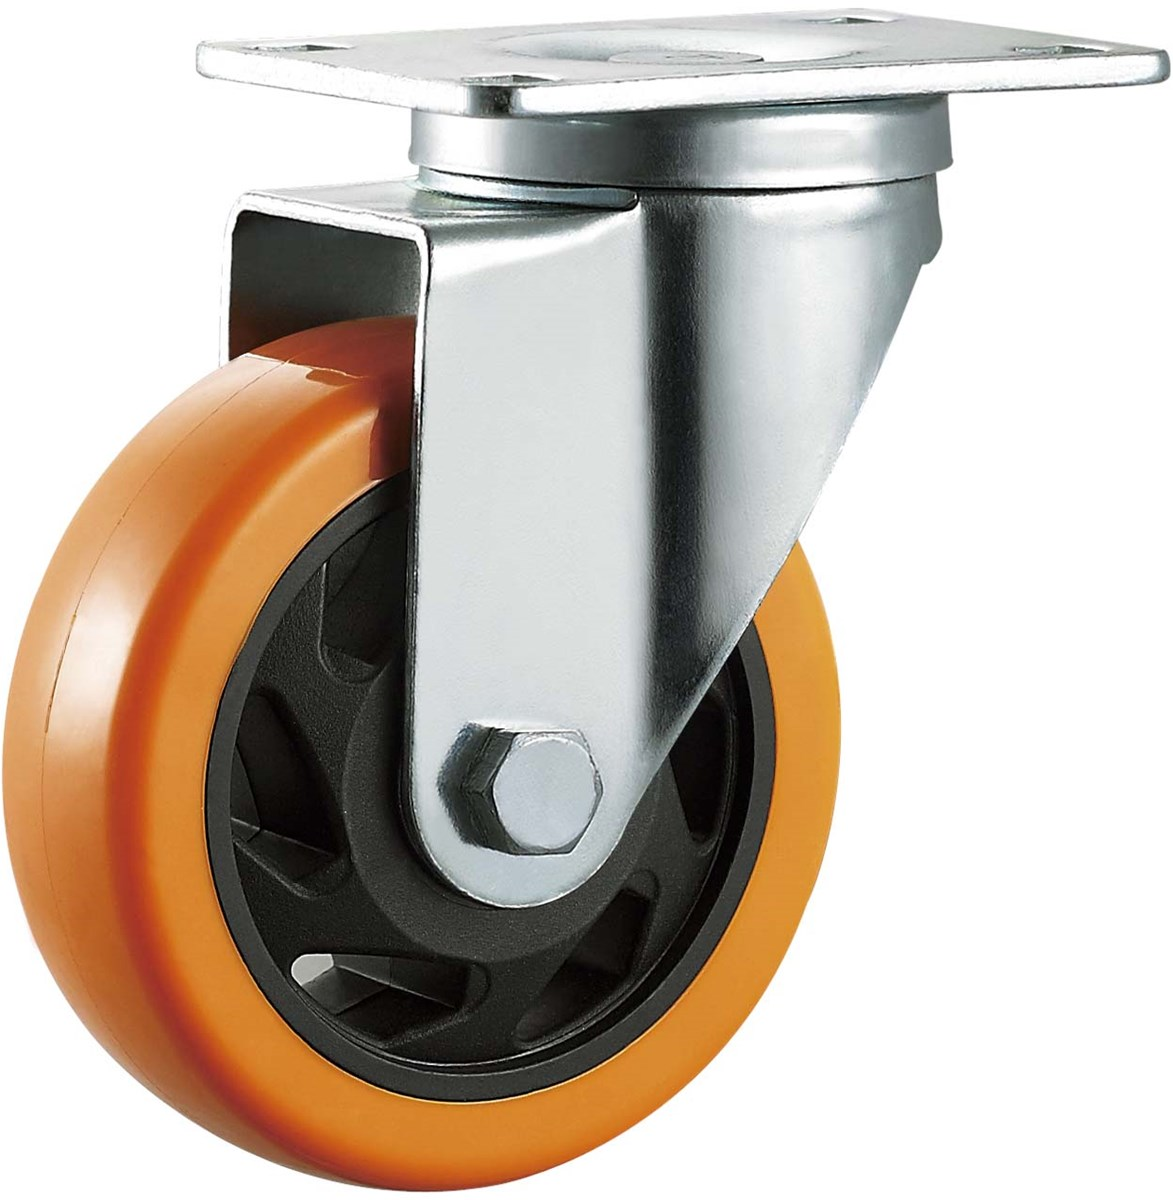 Medium Duty Caster Wheel Hardware Swivel 4 Inches PVC Plastic Ball Bearing Wheels